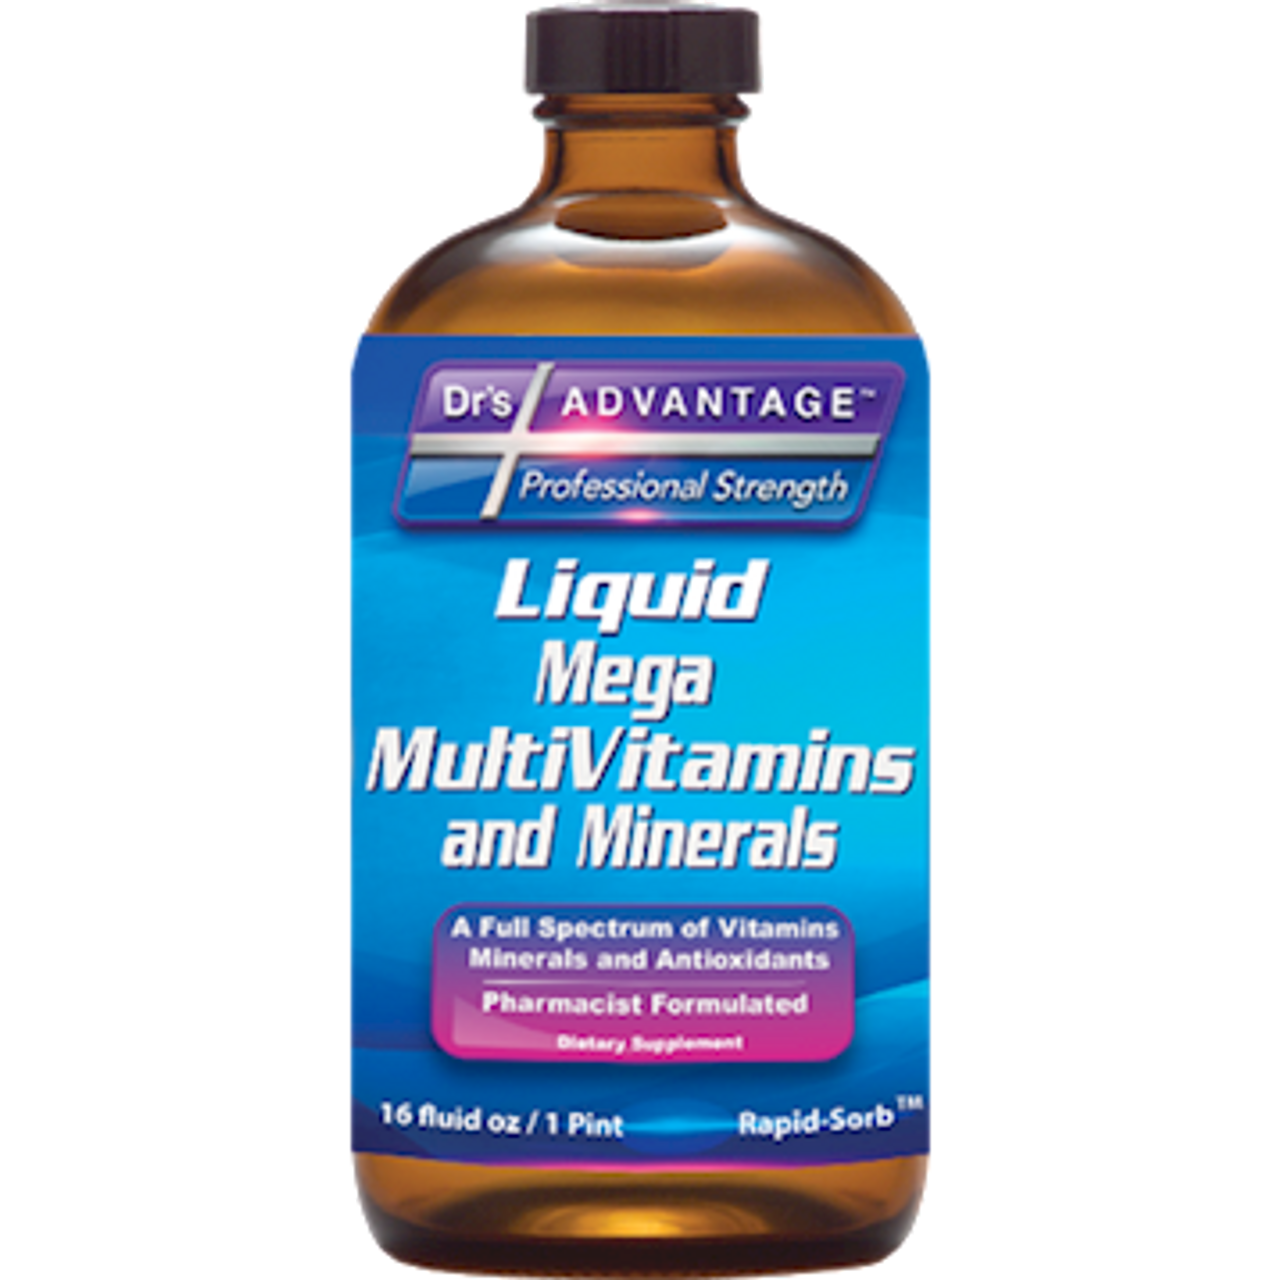 Dr.'s Advantage Liquid Mega Multivitamin and Mineral 16 oz